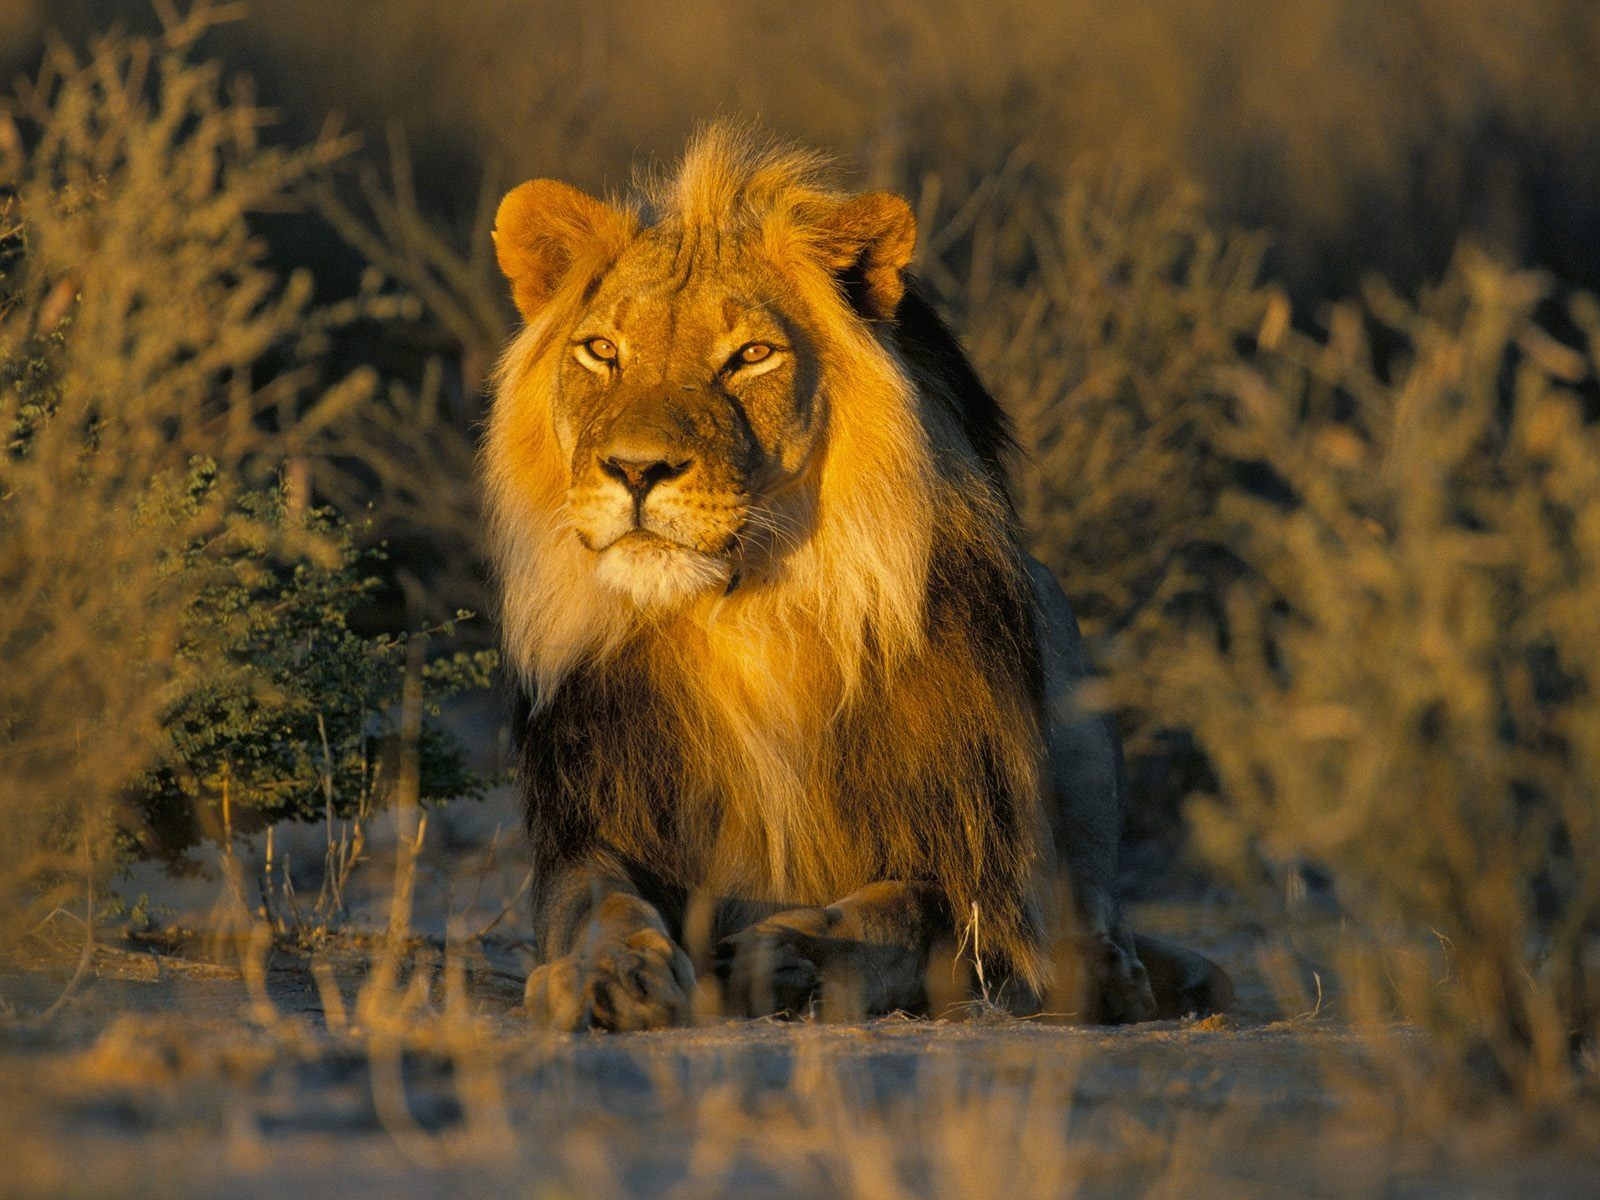 Lions Lions Picture Lions Attack Wild Lions Lion Pictures Pictures Of Lions Lion Wallpaper Lion Pictures African Lion